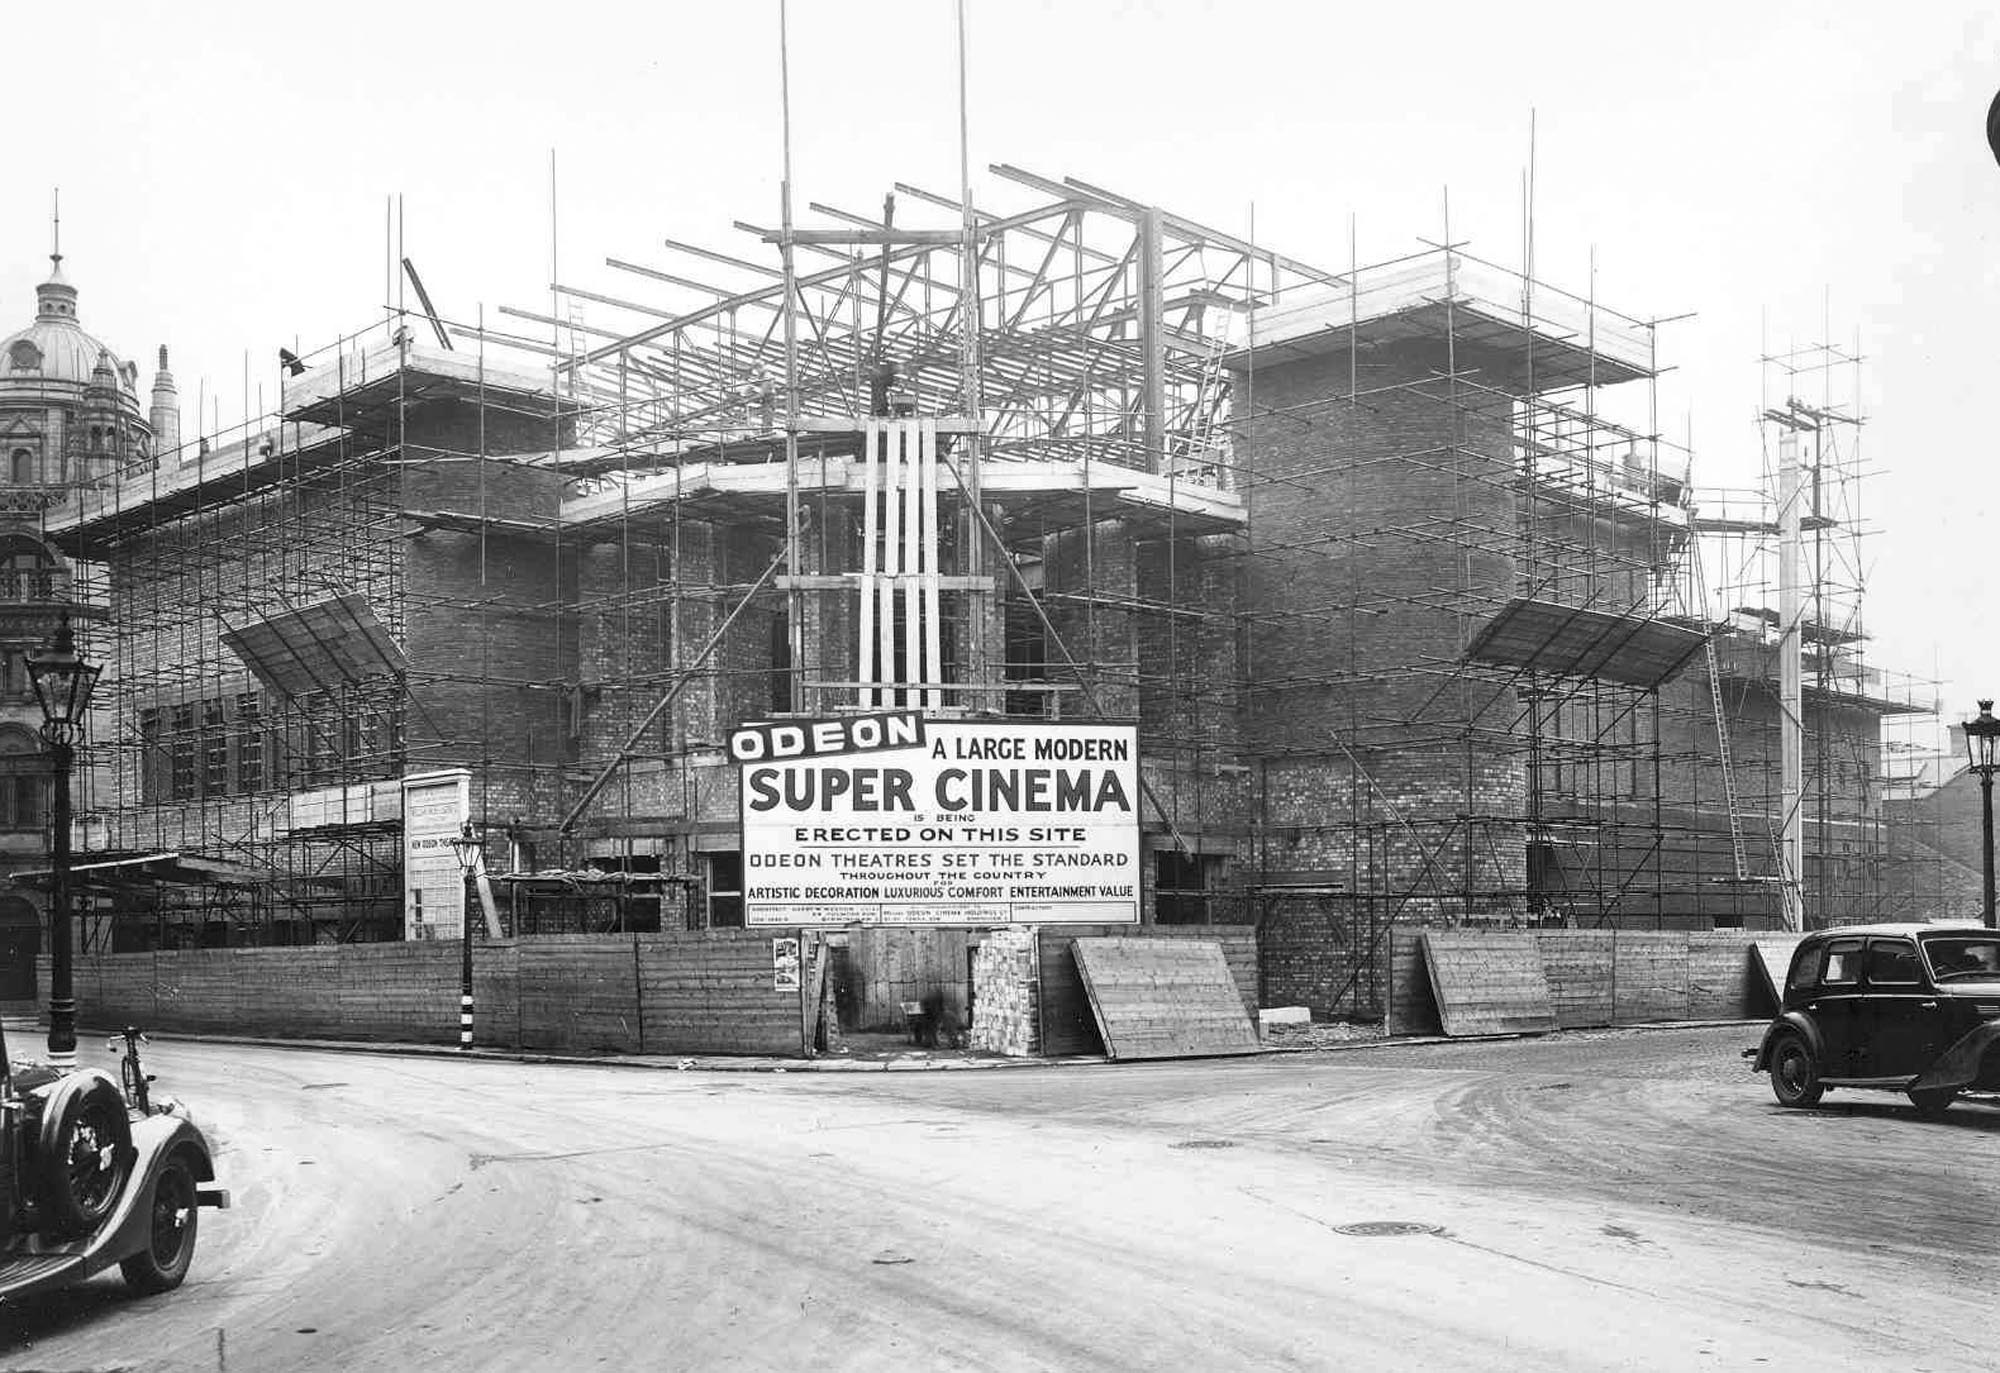 The cinema from the front during construction, 1937 - Affective Digital Histories, University of Leicester